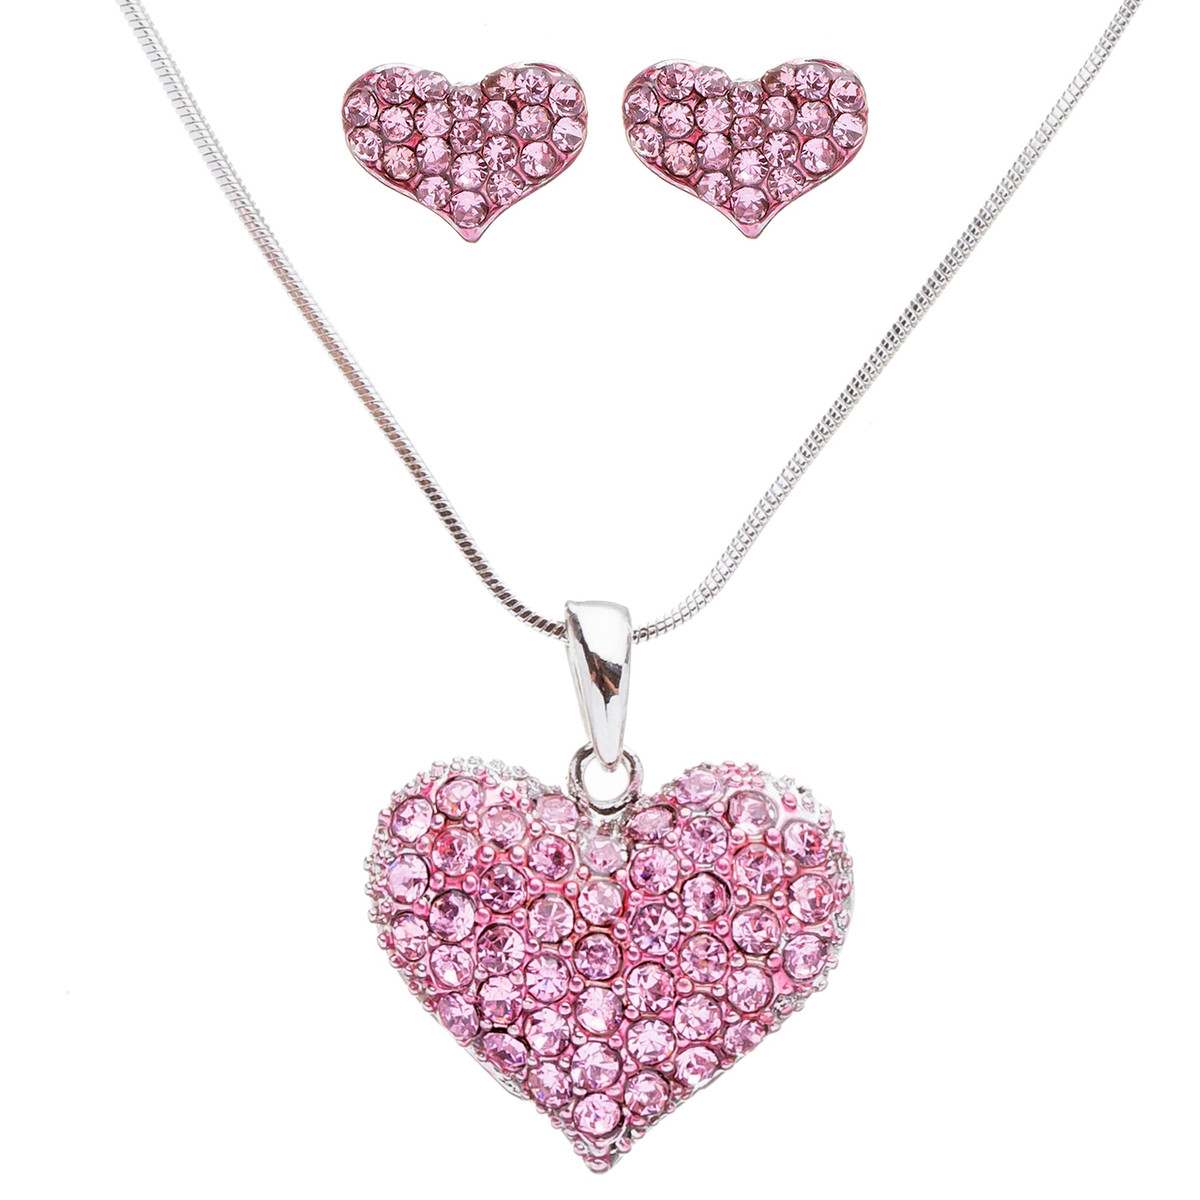 day valentine image bff s forever friend pink itm love valentines is best heart loading pendant hot necklace